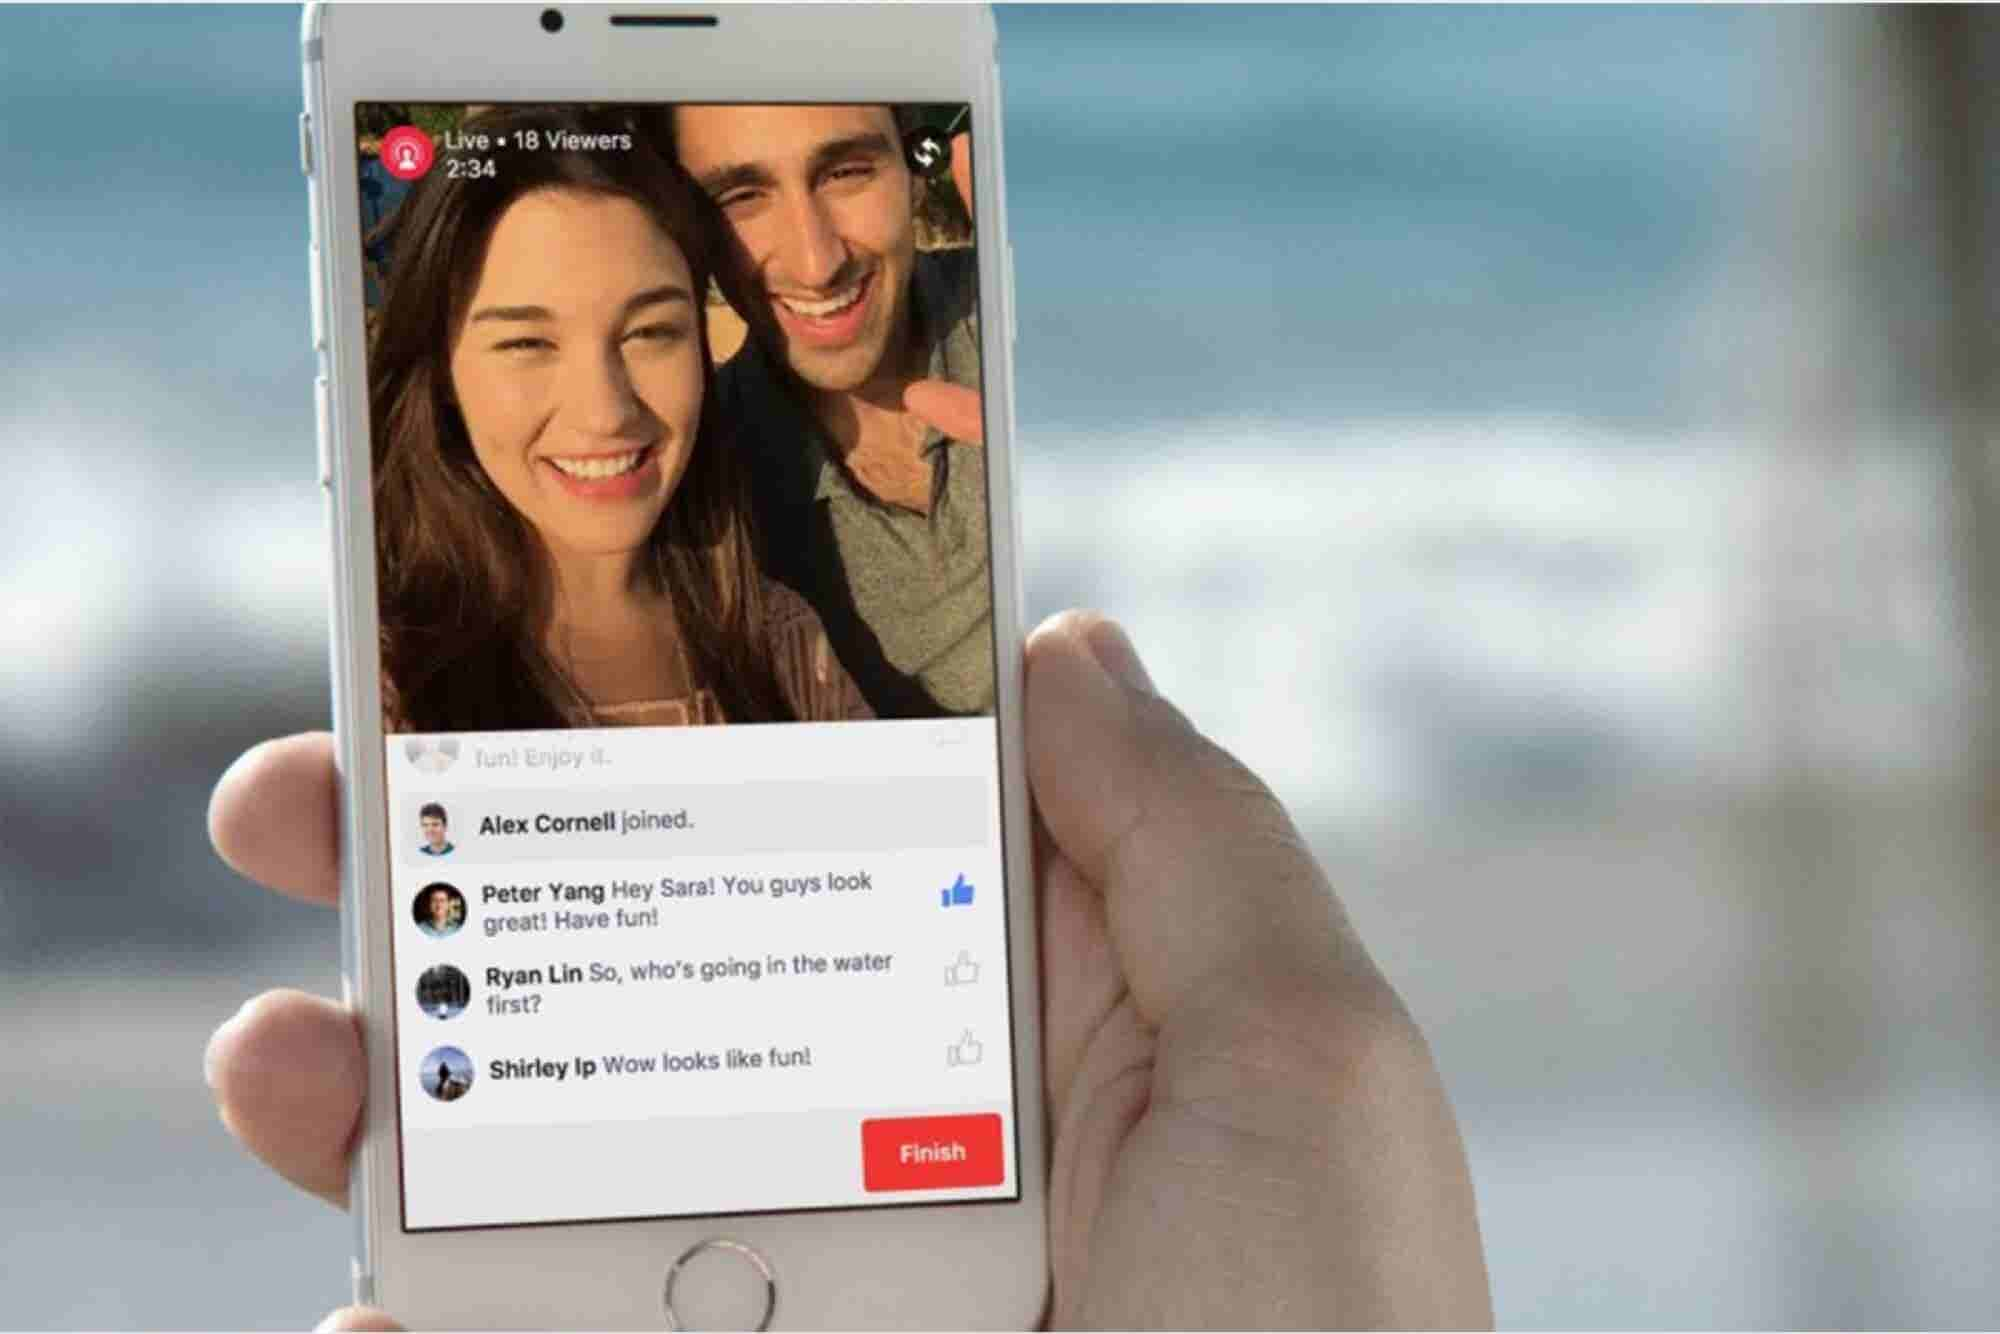 Periscope-Like Live Video Streaming Comes to Everyday Facebook Users